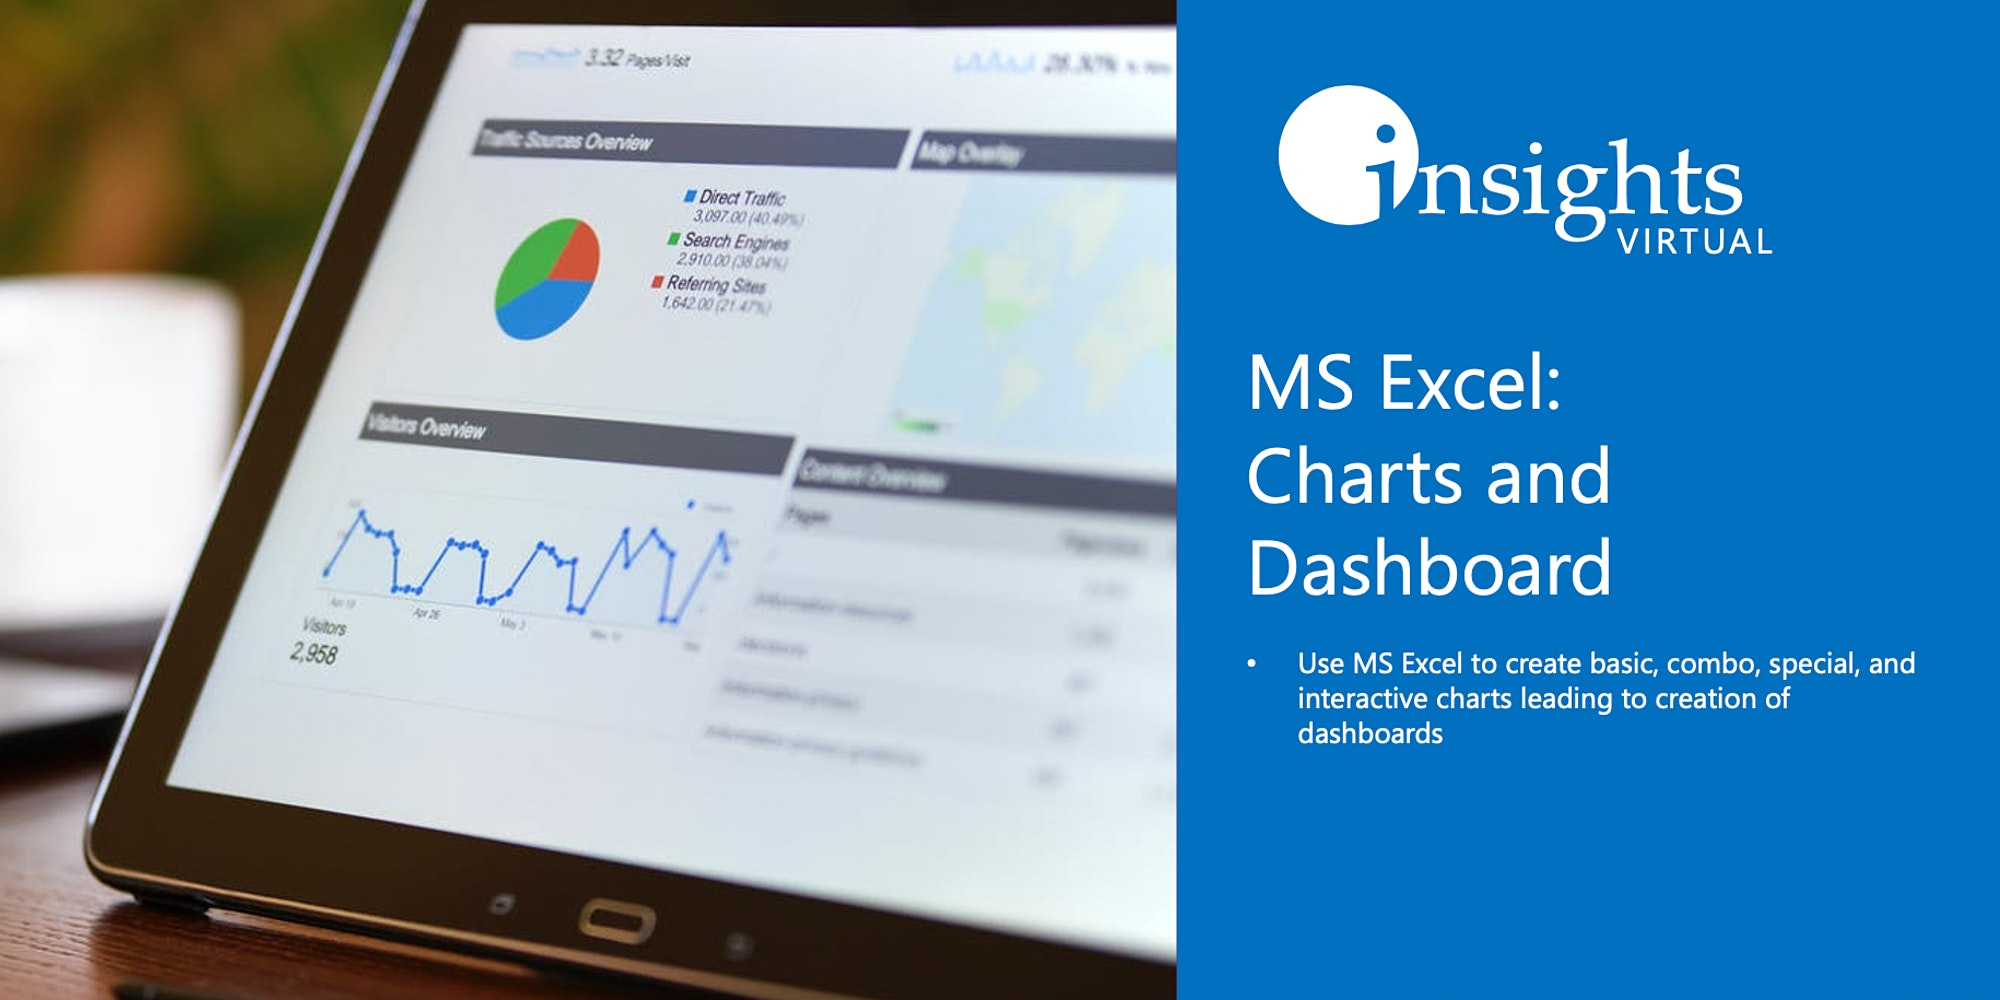 MS Excel: Charts and Dashboard